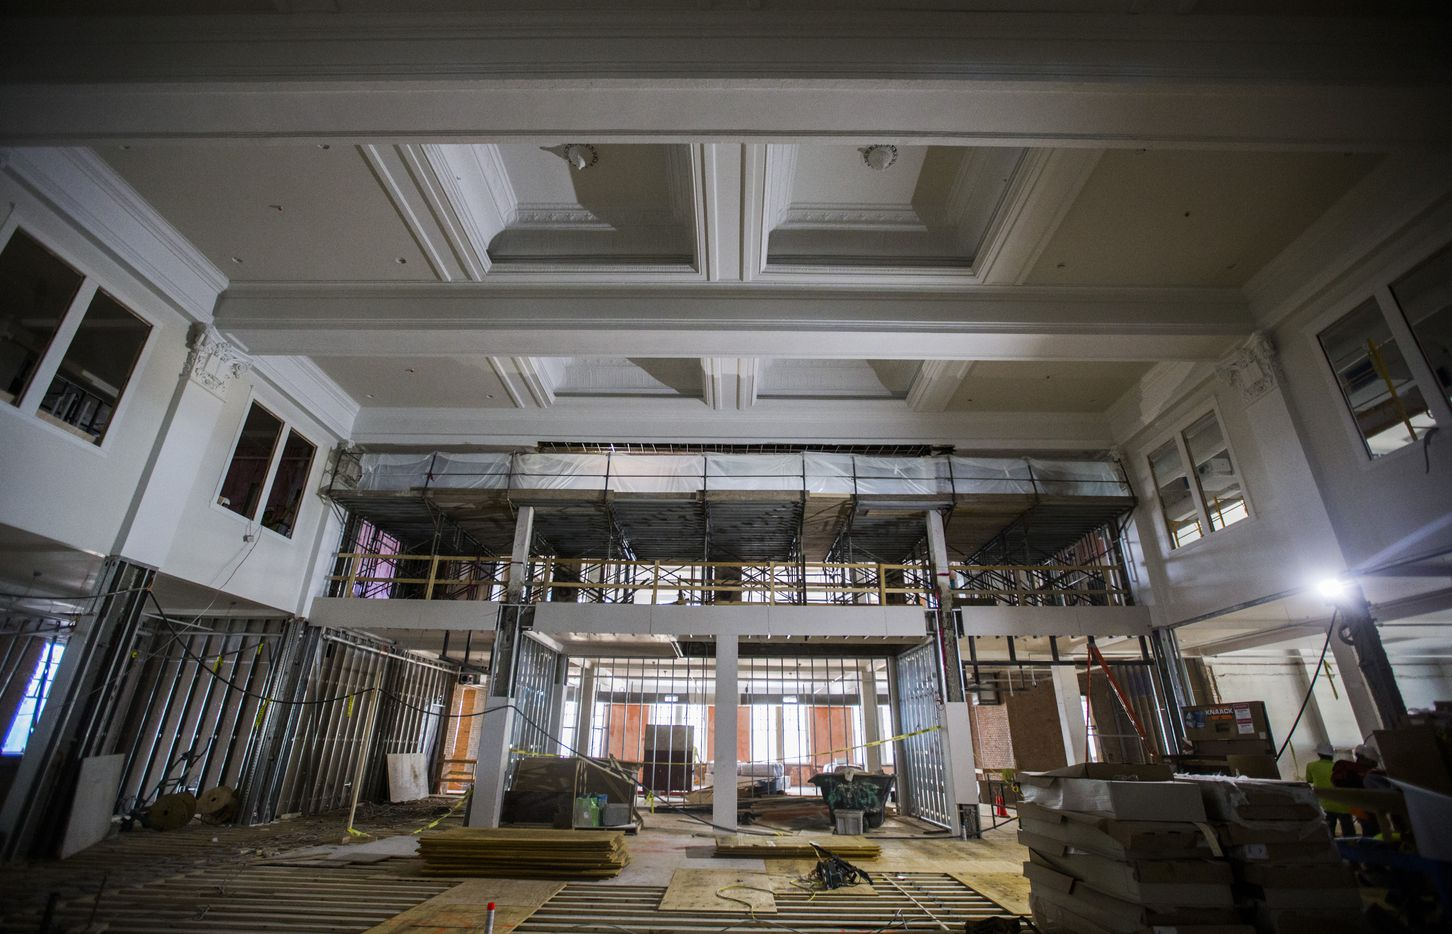 """Architects and preservationists have been working with Matthews Southwest to restore """"phenomenal"""" spaces, like this old auditorium, in the 110-year-old high school. The developer bought the landmark in 2015, and plans to reopen it later this year."""